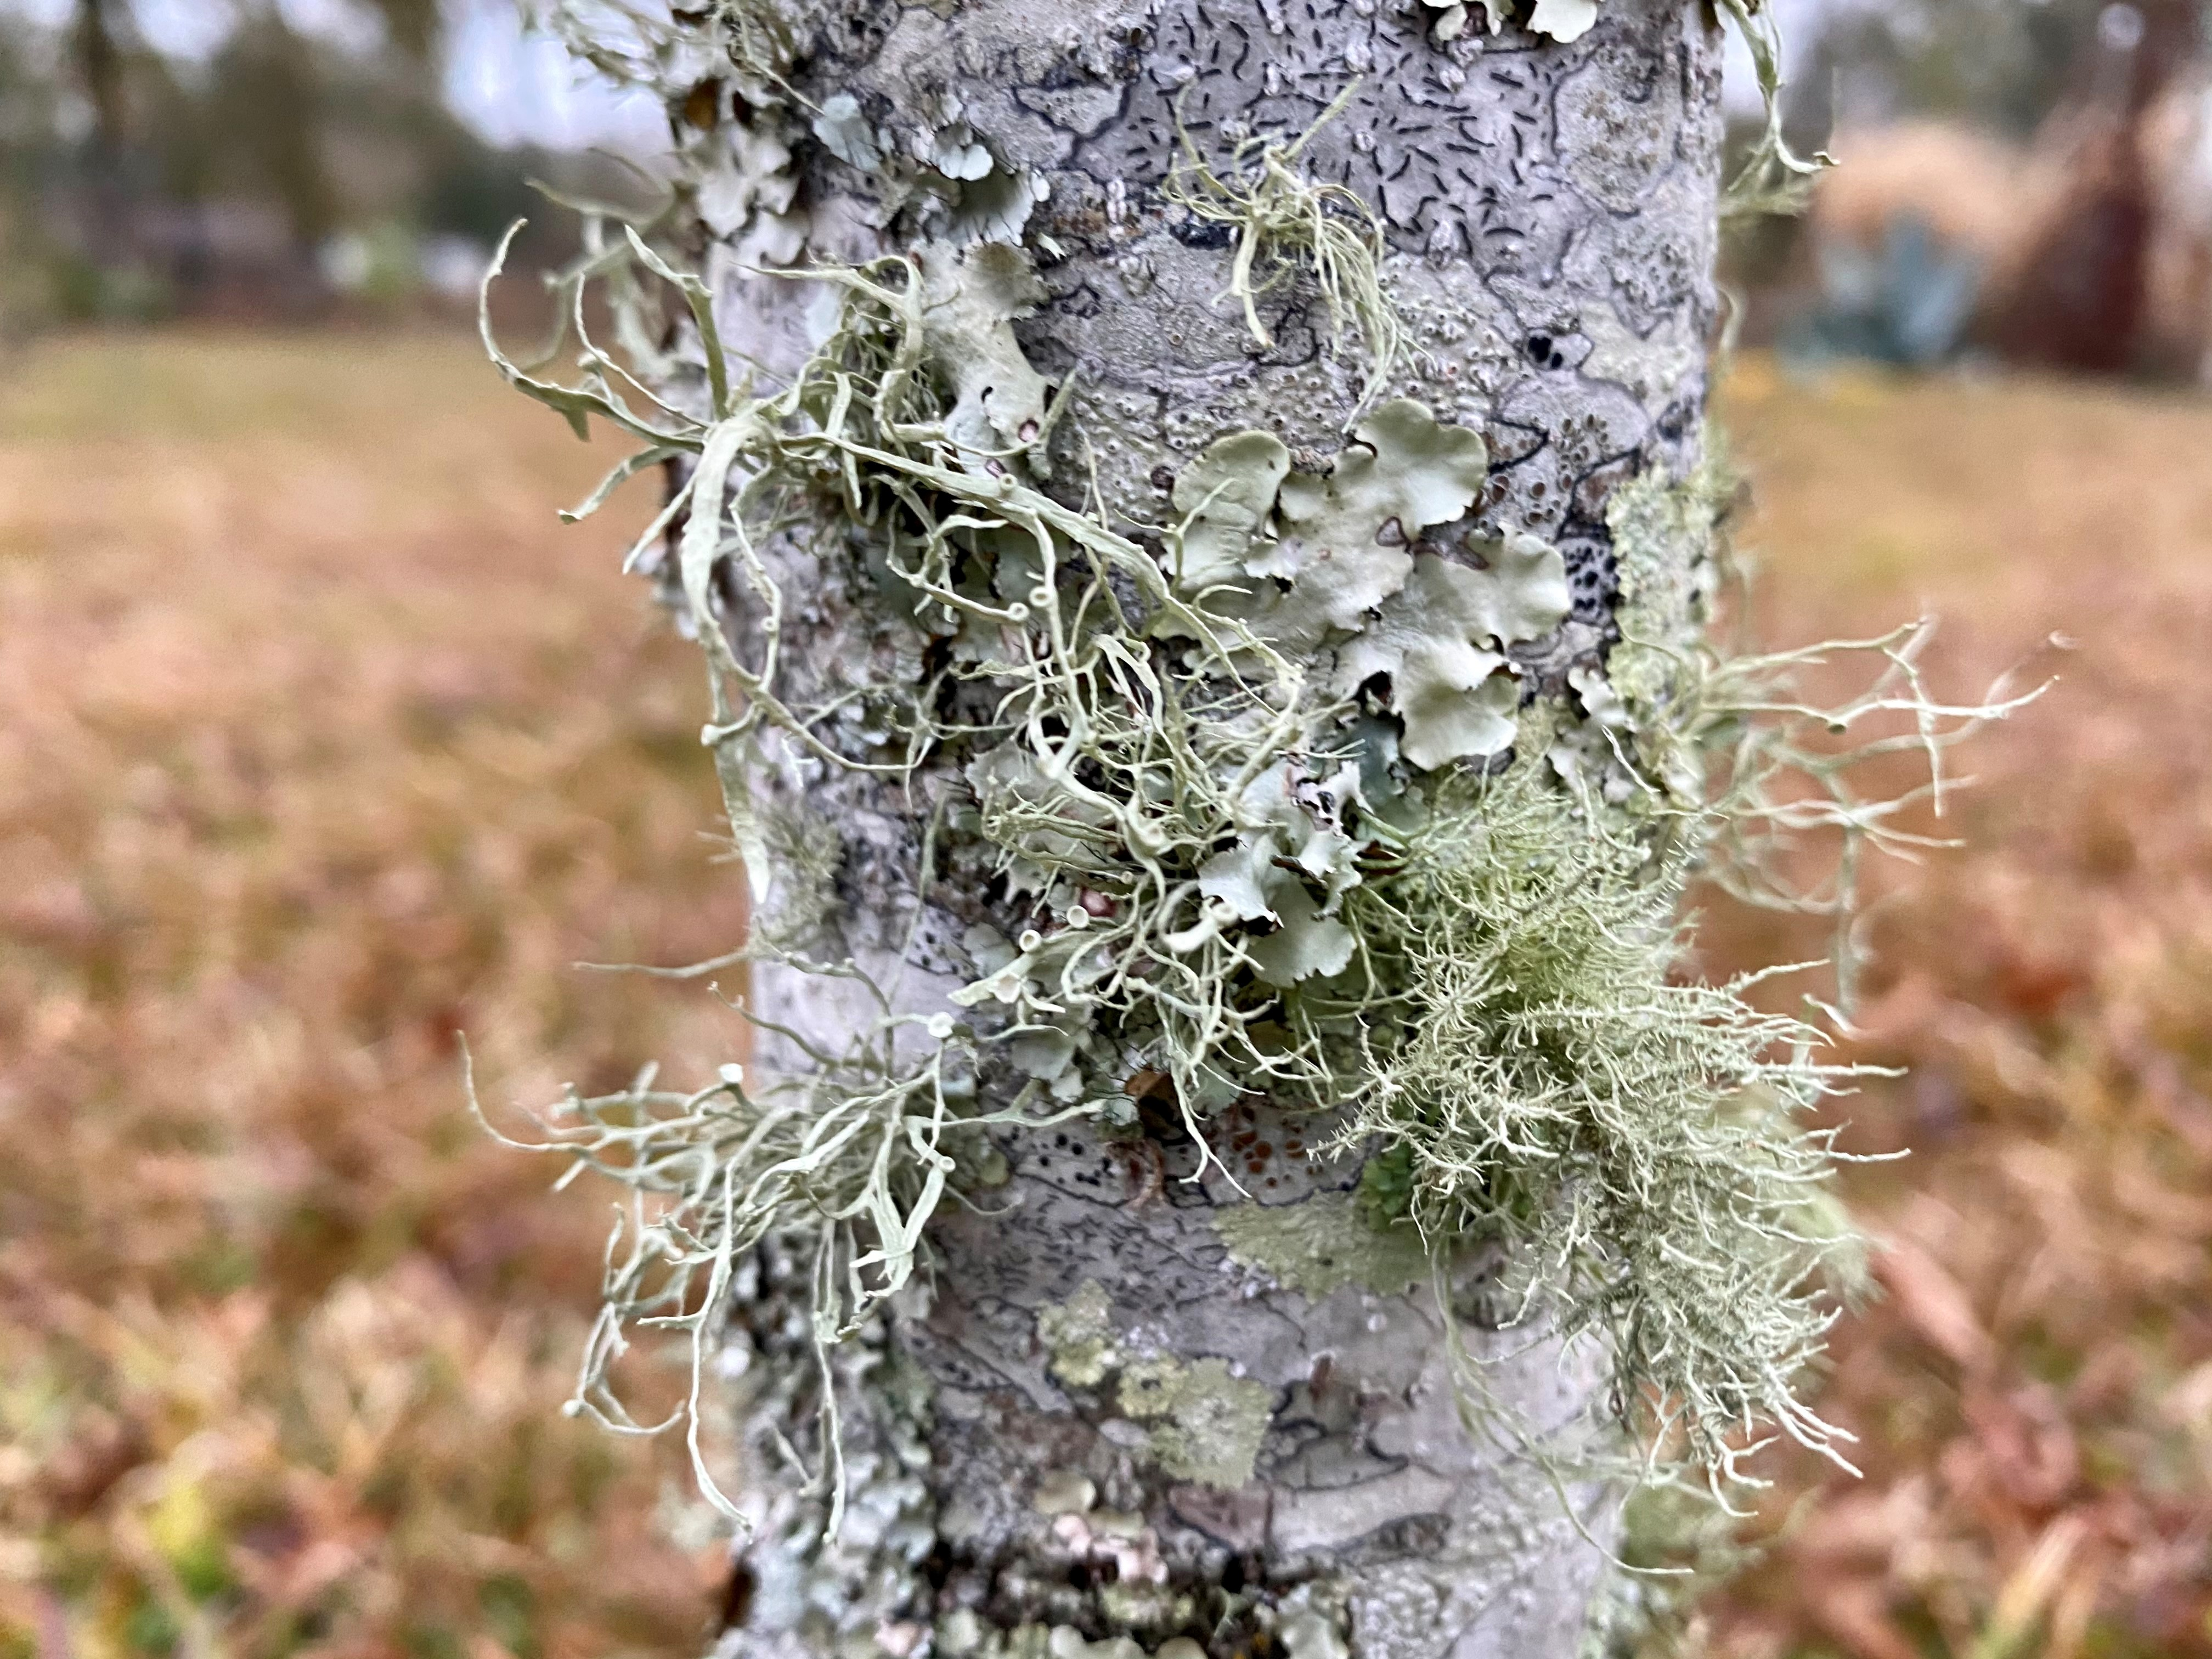 Highly branched fruticose lichens appear hair-like and stand upright sometimes displaying a cup.